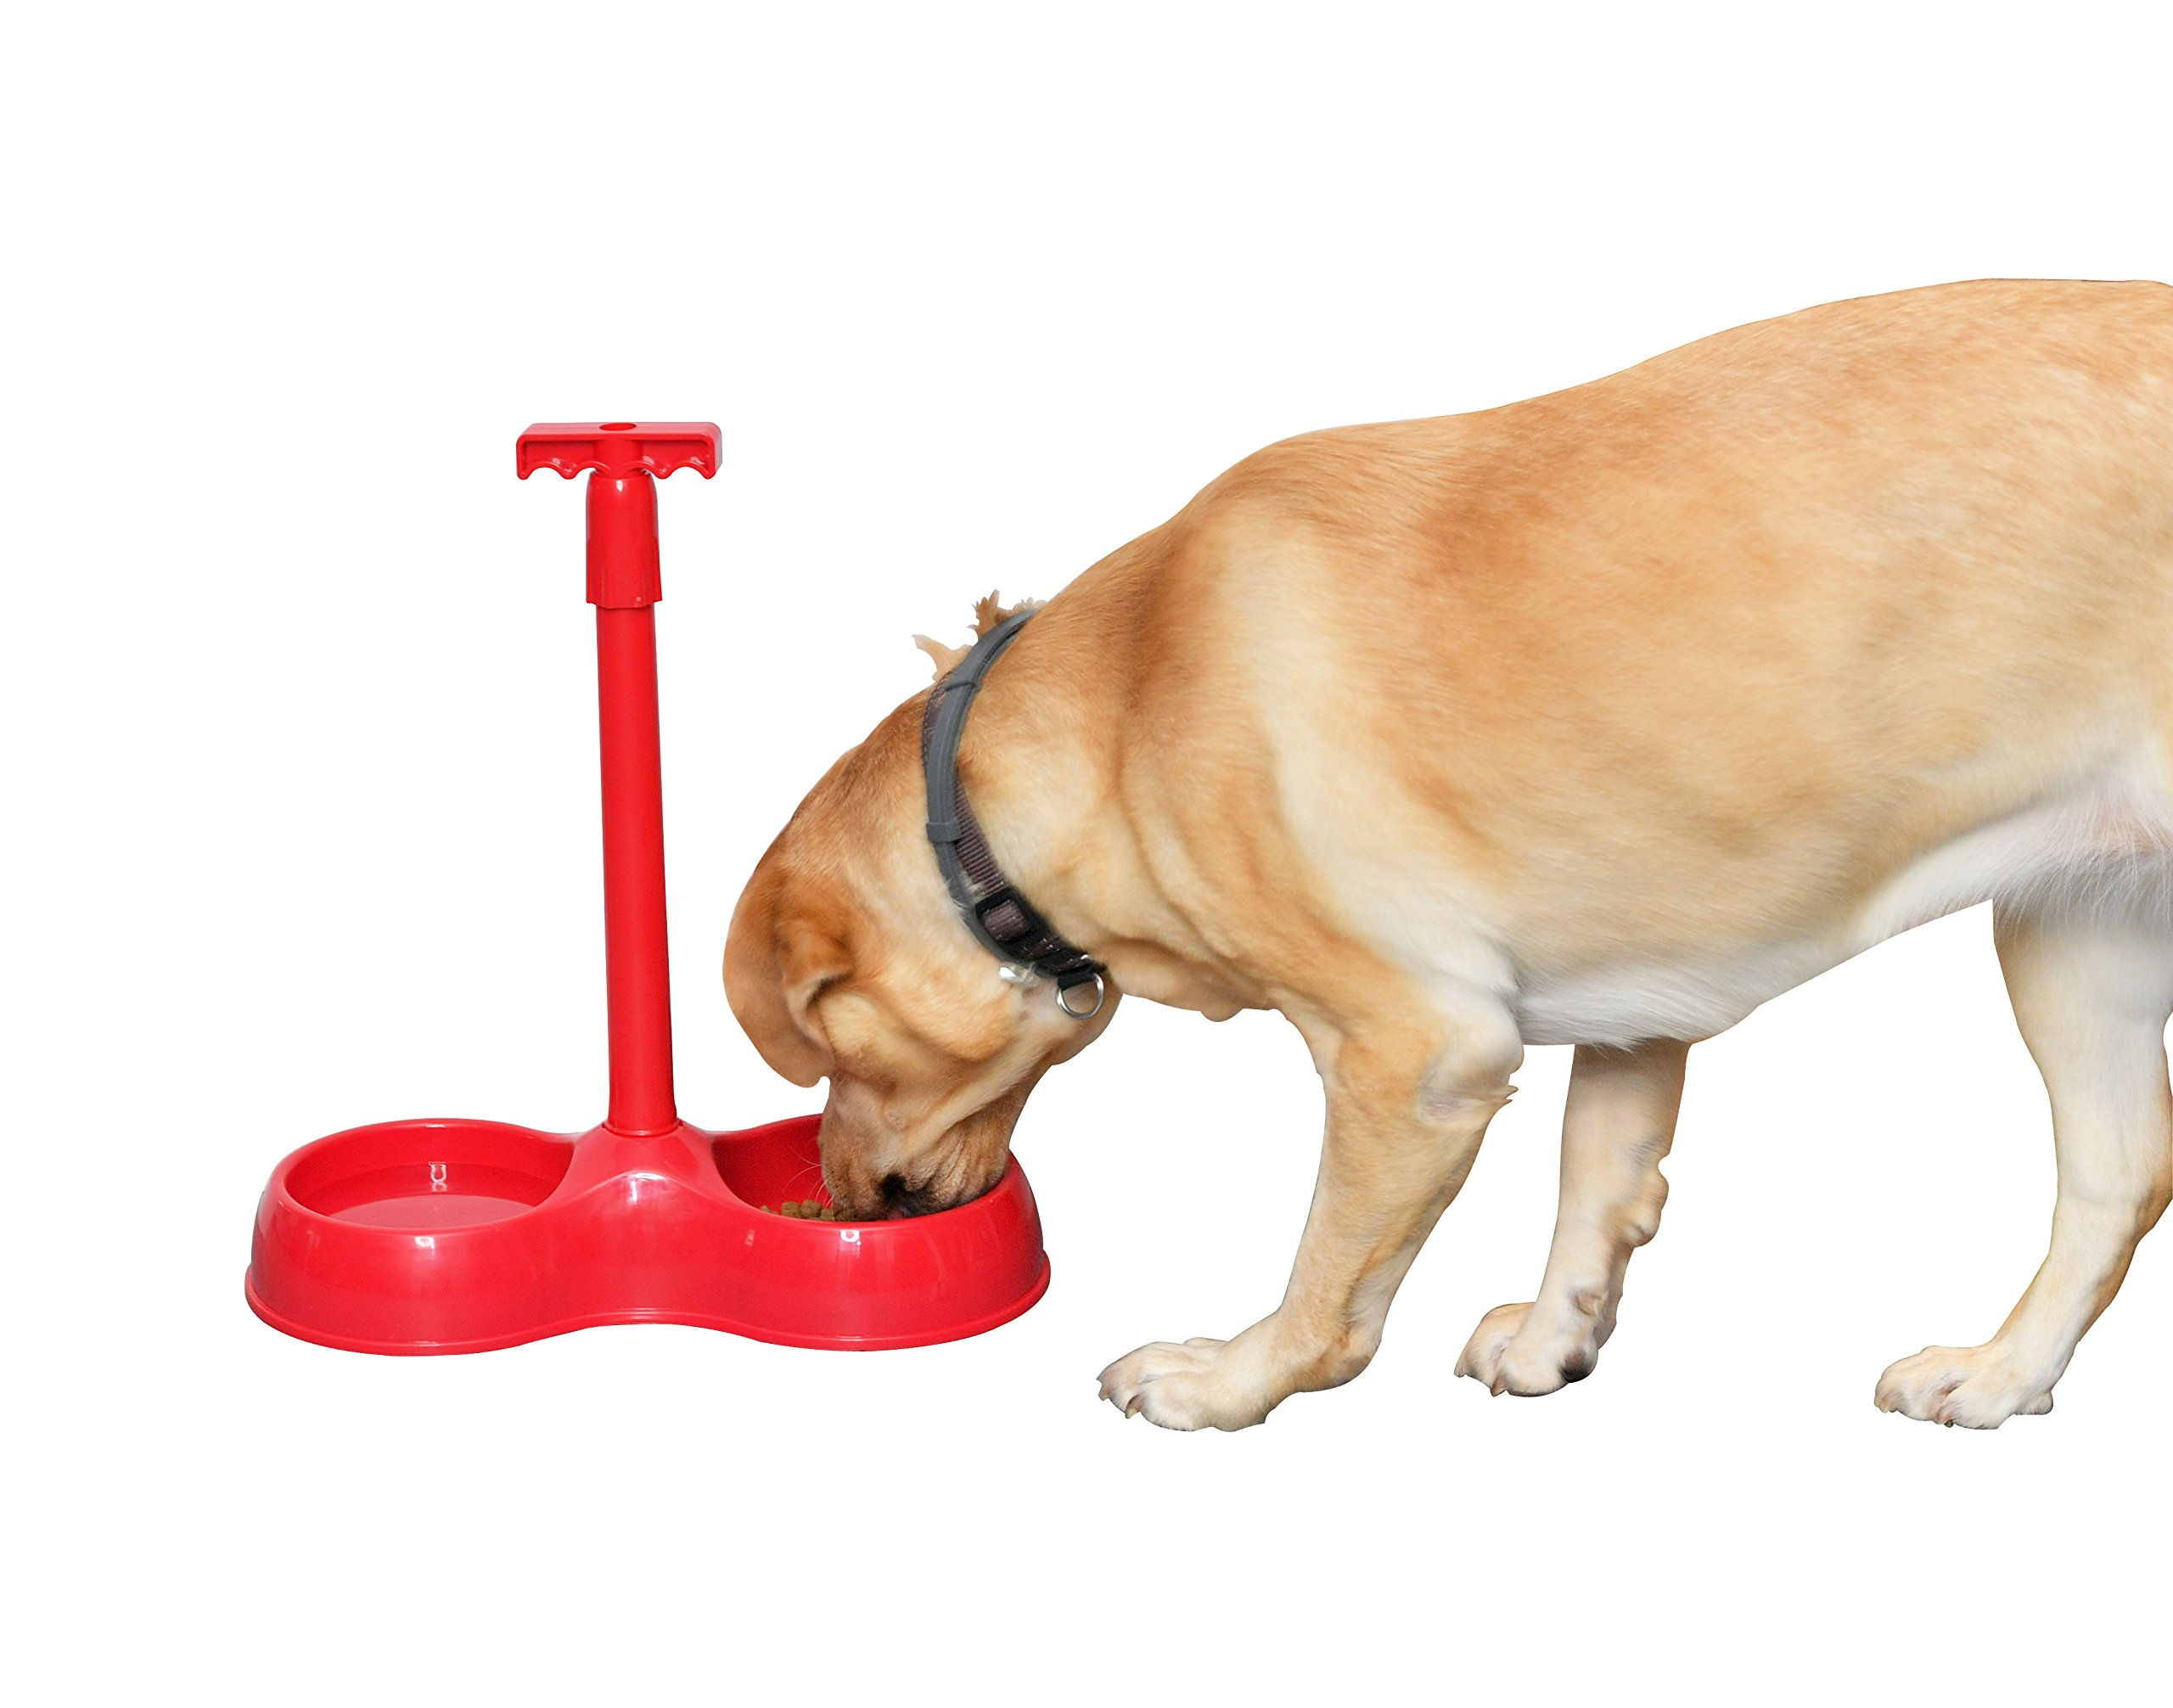 ARAD No More Bending Dual Pet Bowl – Perfect Food Station For Those with Limited Mobility - No More Bending or Kneeling When it's Time to Feed Your Beloved Furry Best Friend (Red) by